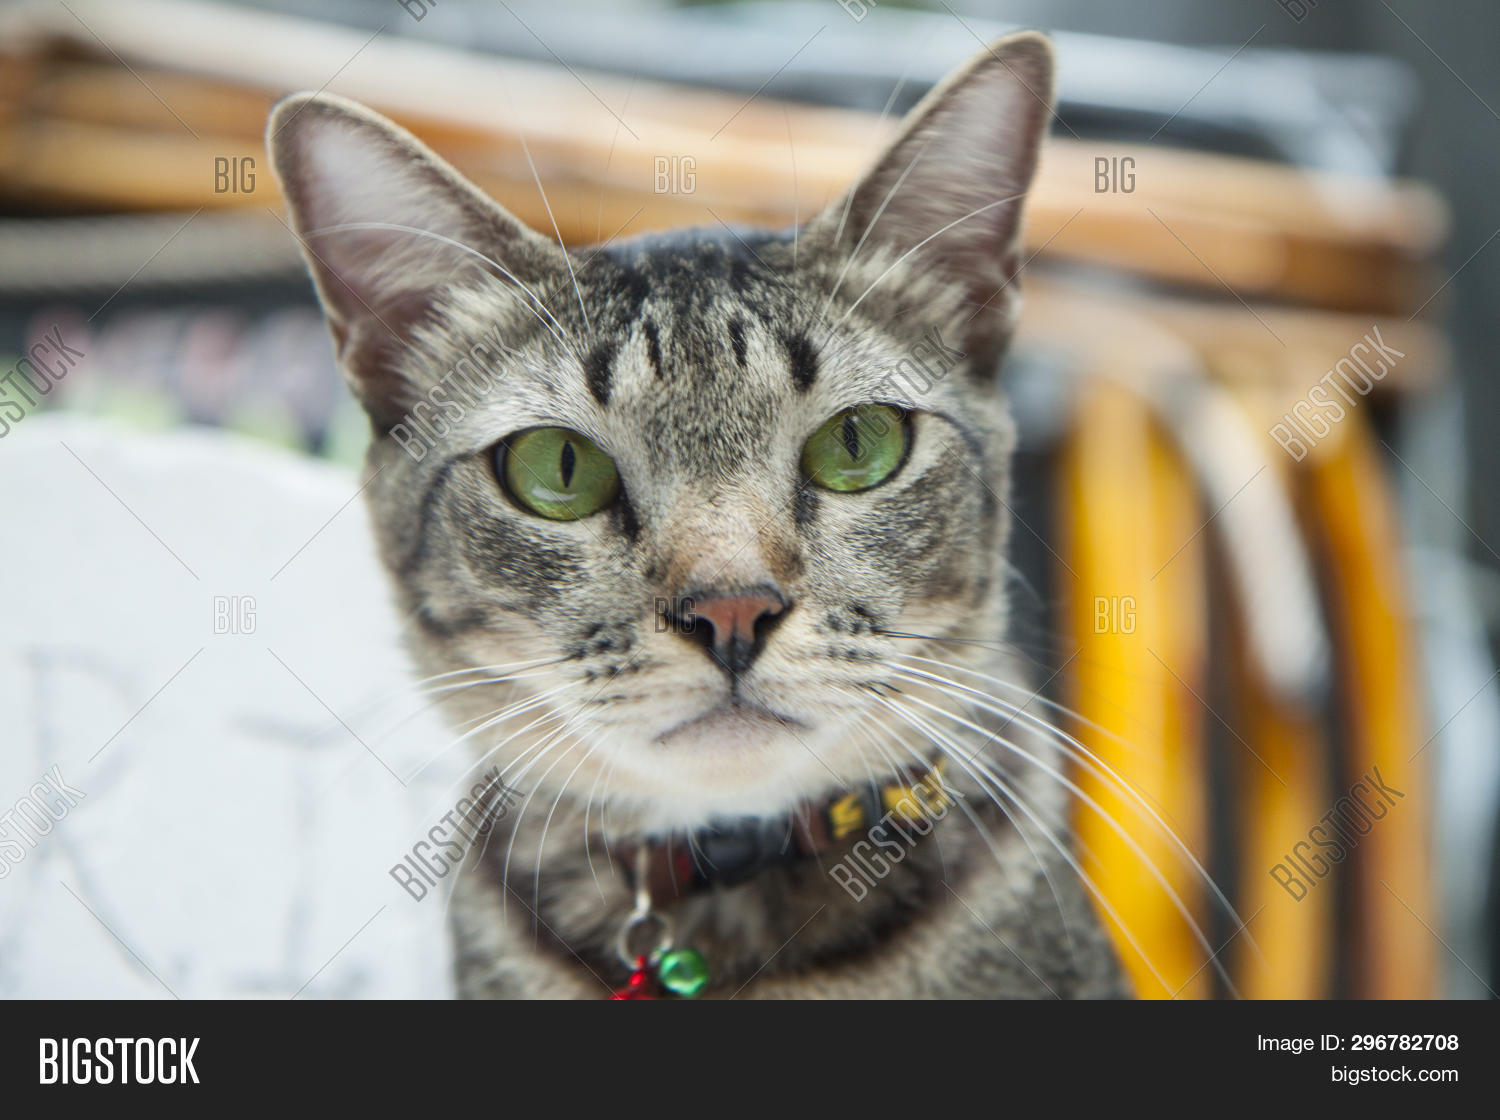 Gray Cat Green Eyes Image & Photo (Free Trial) | Bigstock